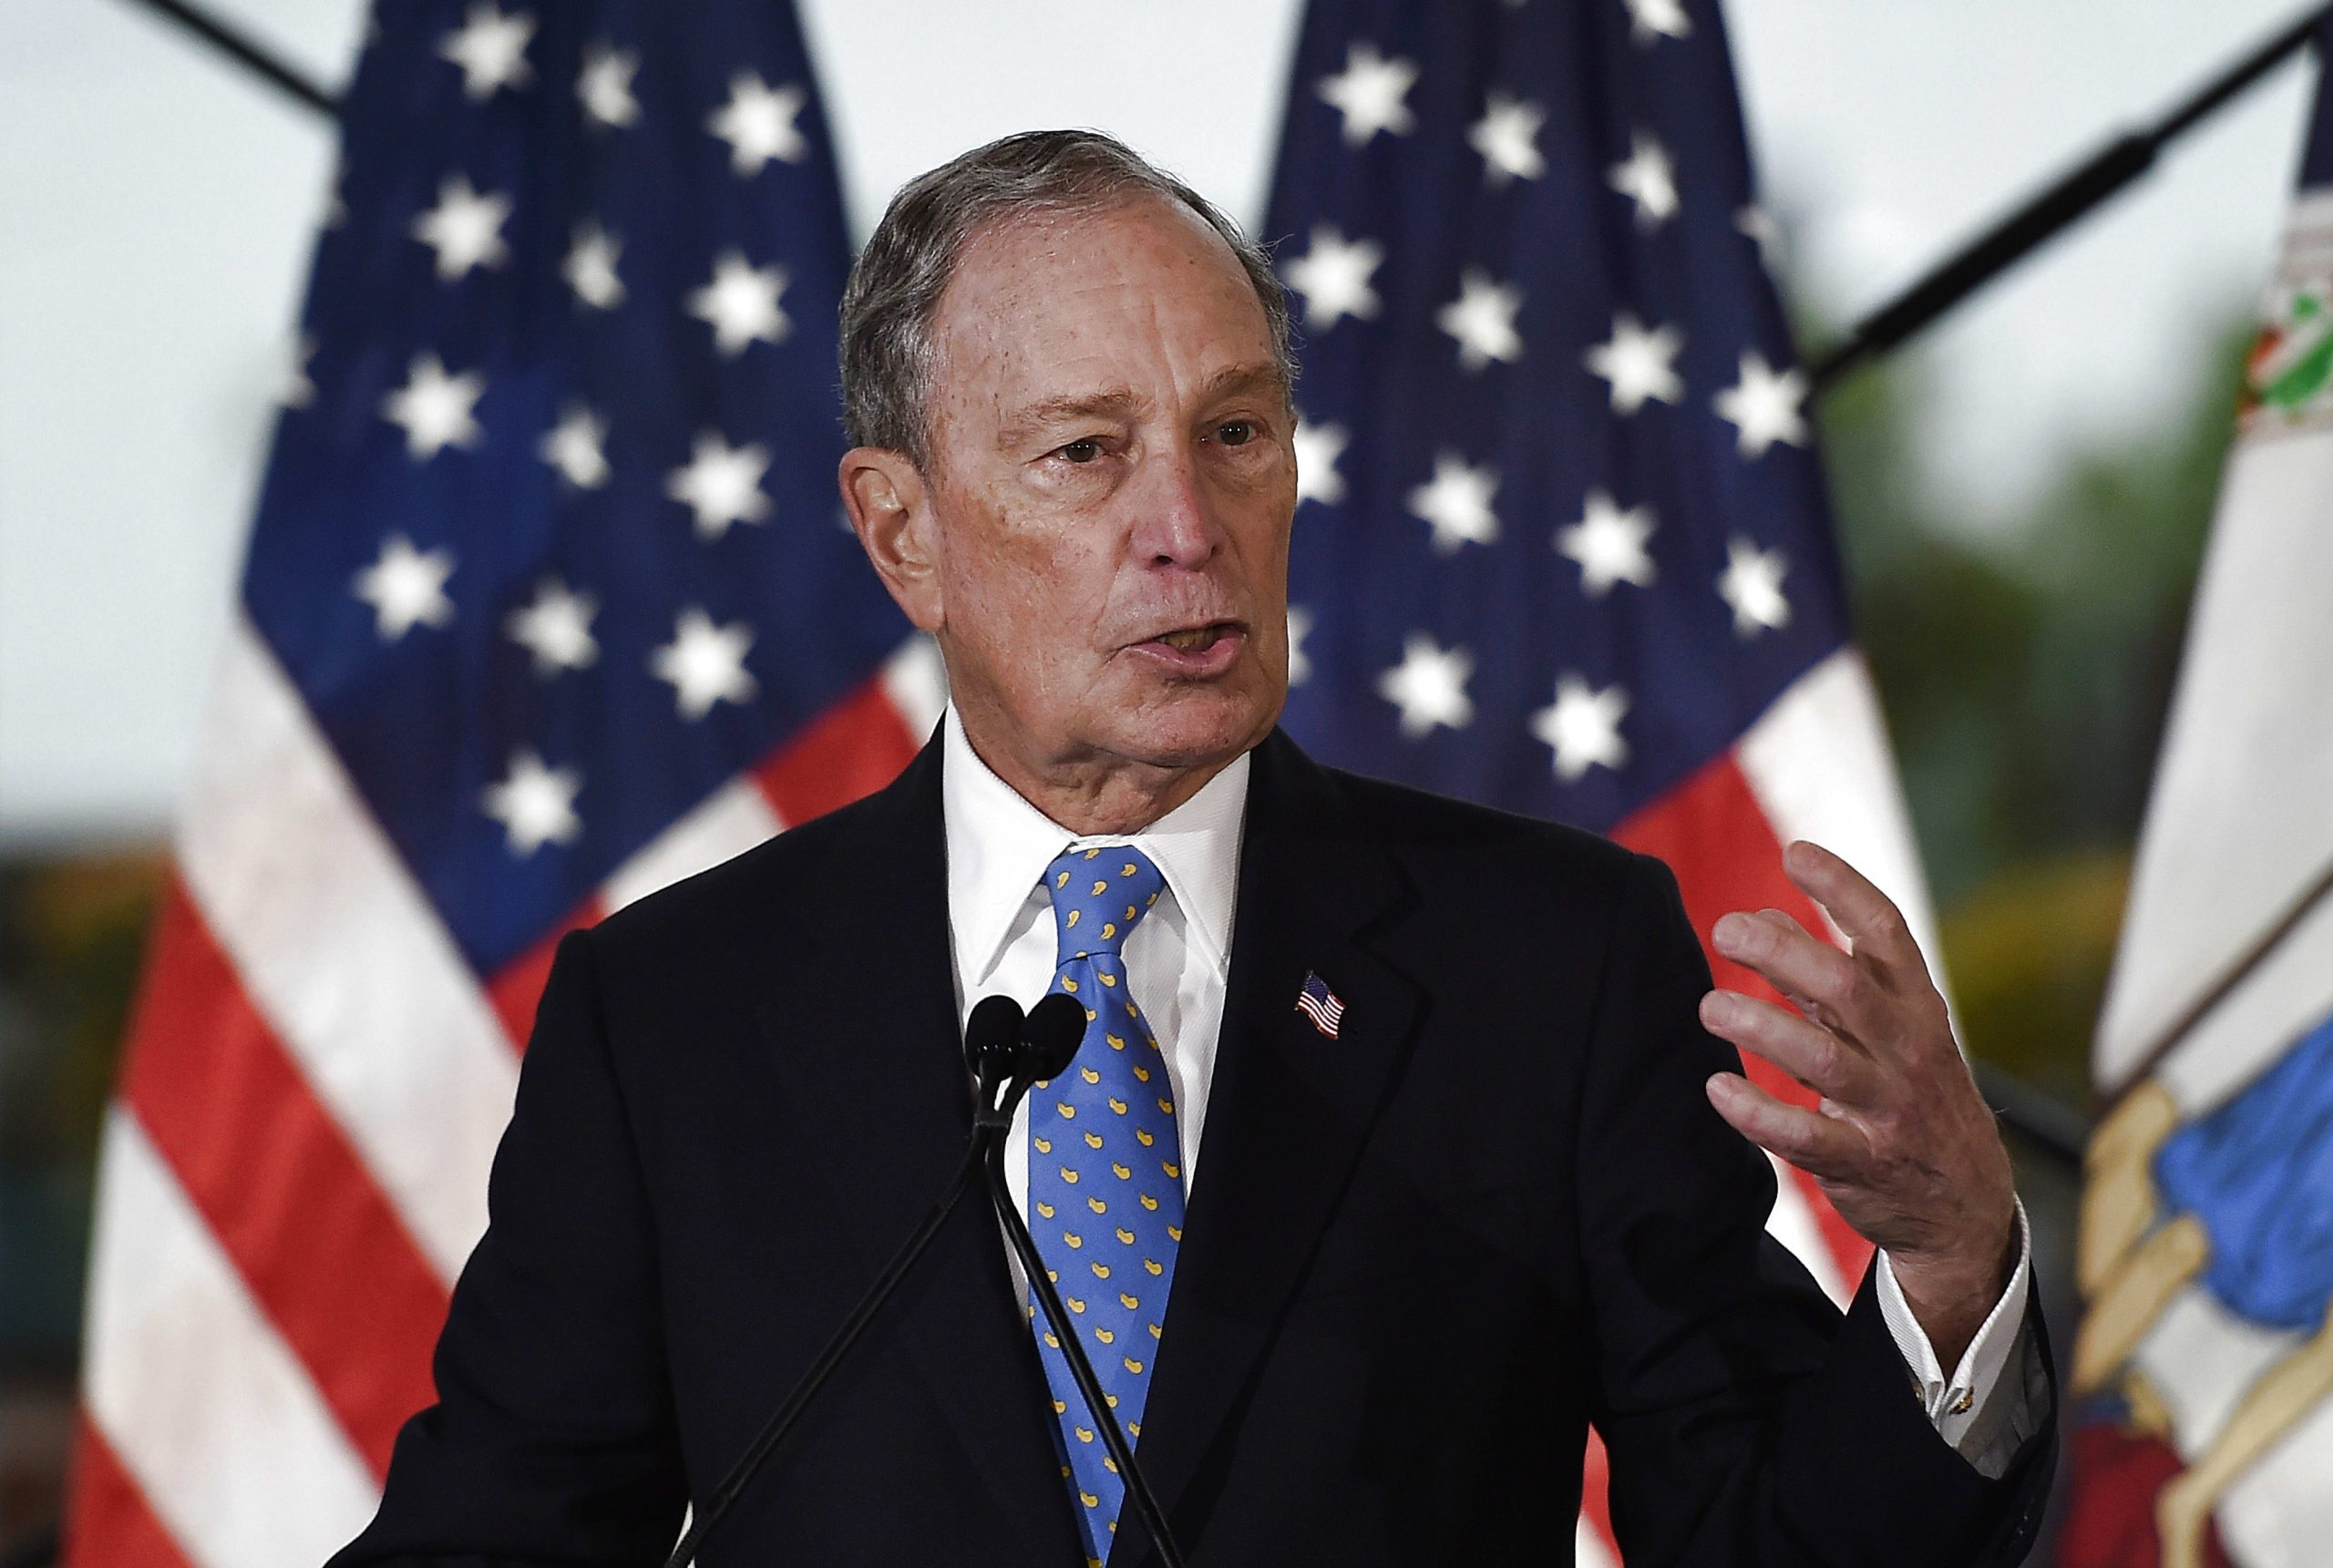 Mike Bloomberg will push Wall Street executives, other megadonors to back fundraising effort for DNC in 2020